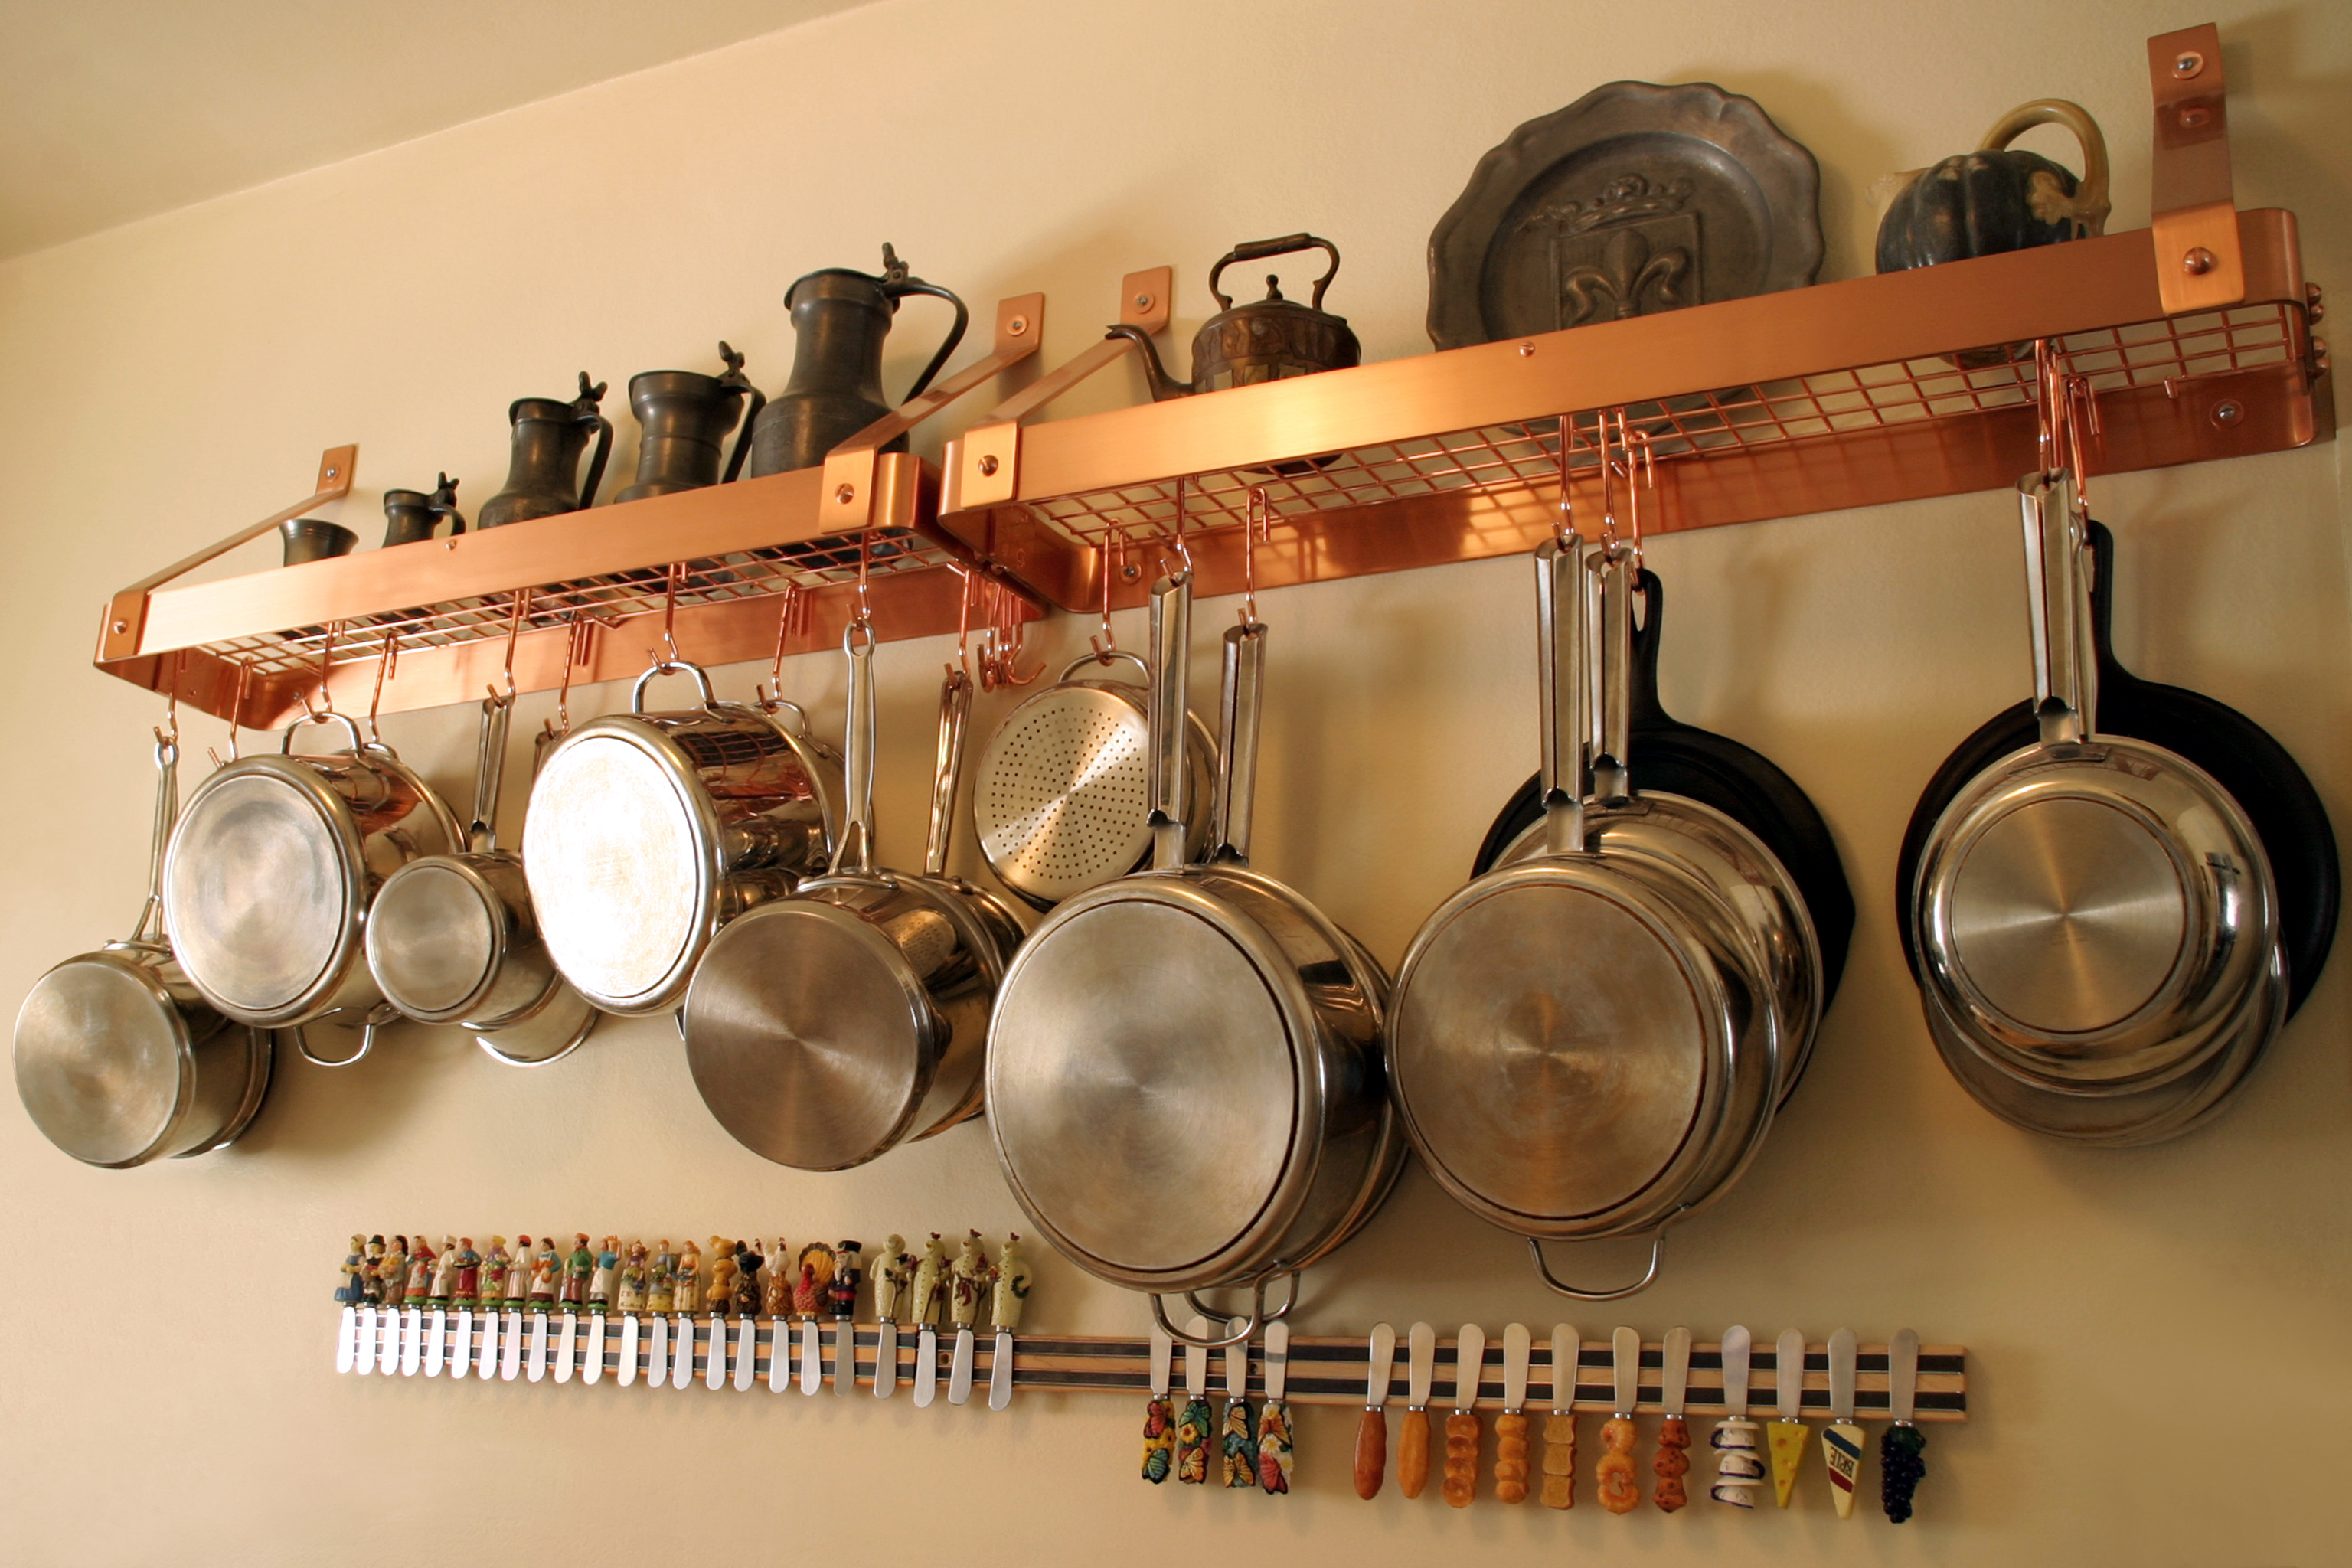 Maximum kitchen space by hanging pots and pans on the wall